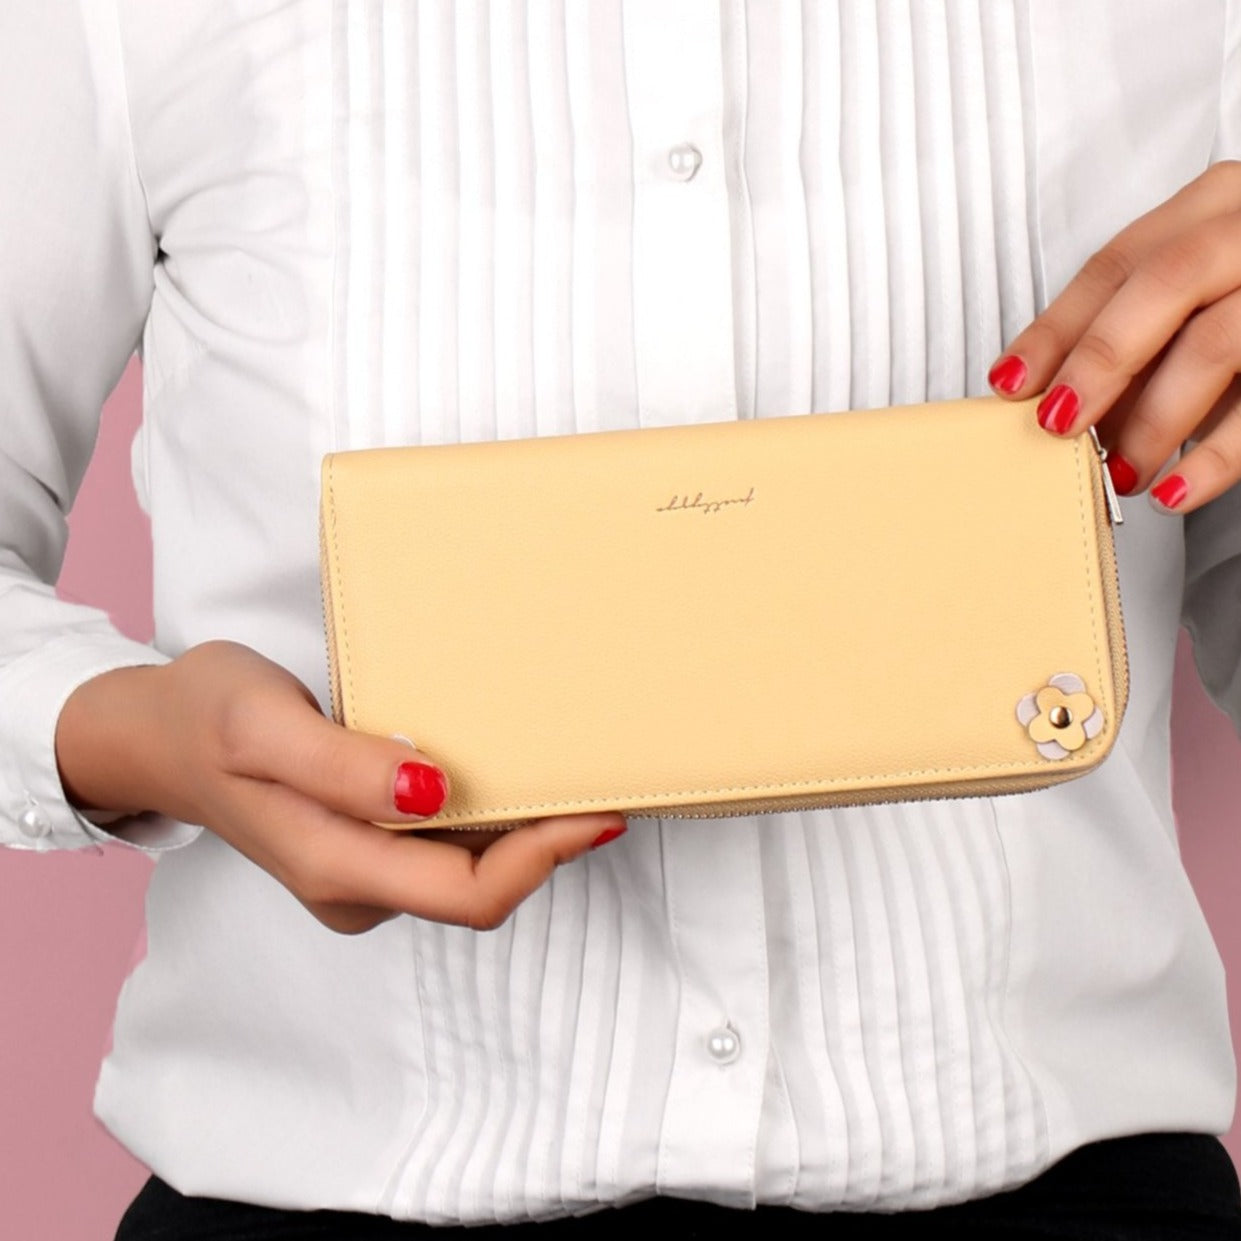 The Exquisite Signature Wallet in Pale Tone